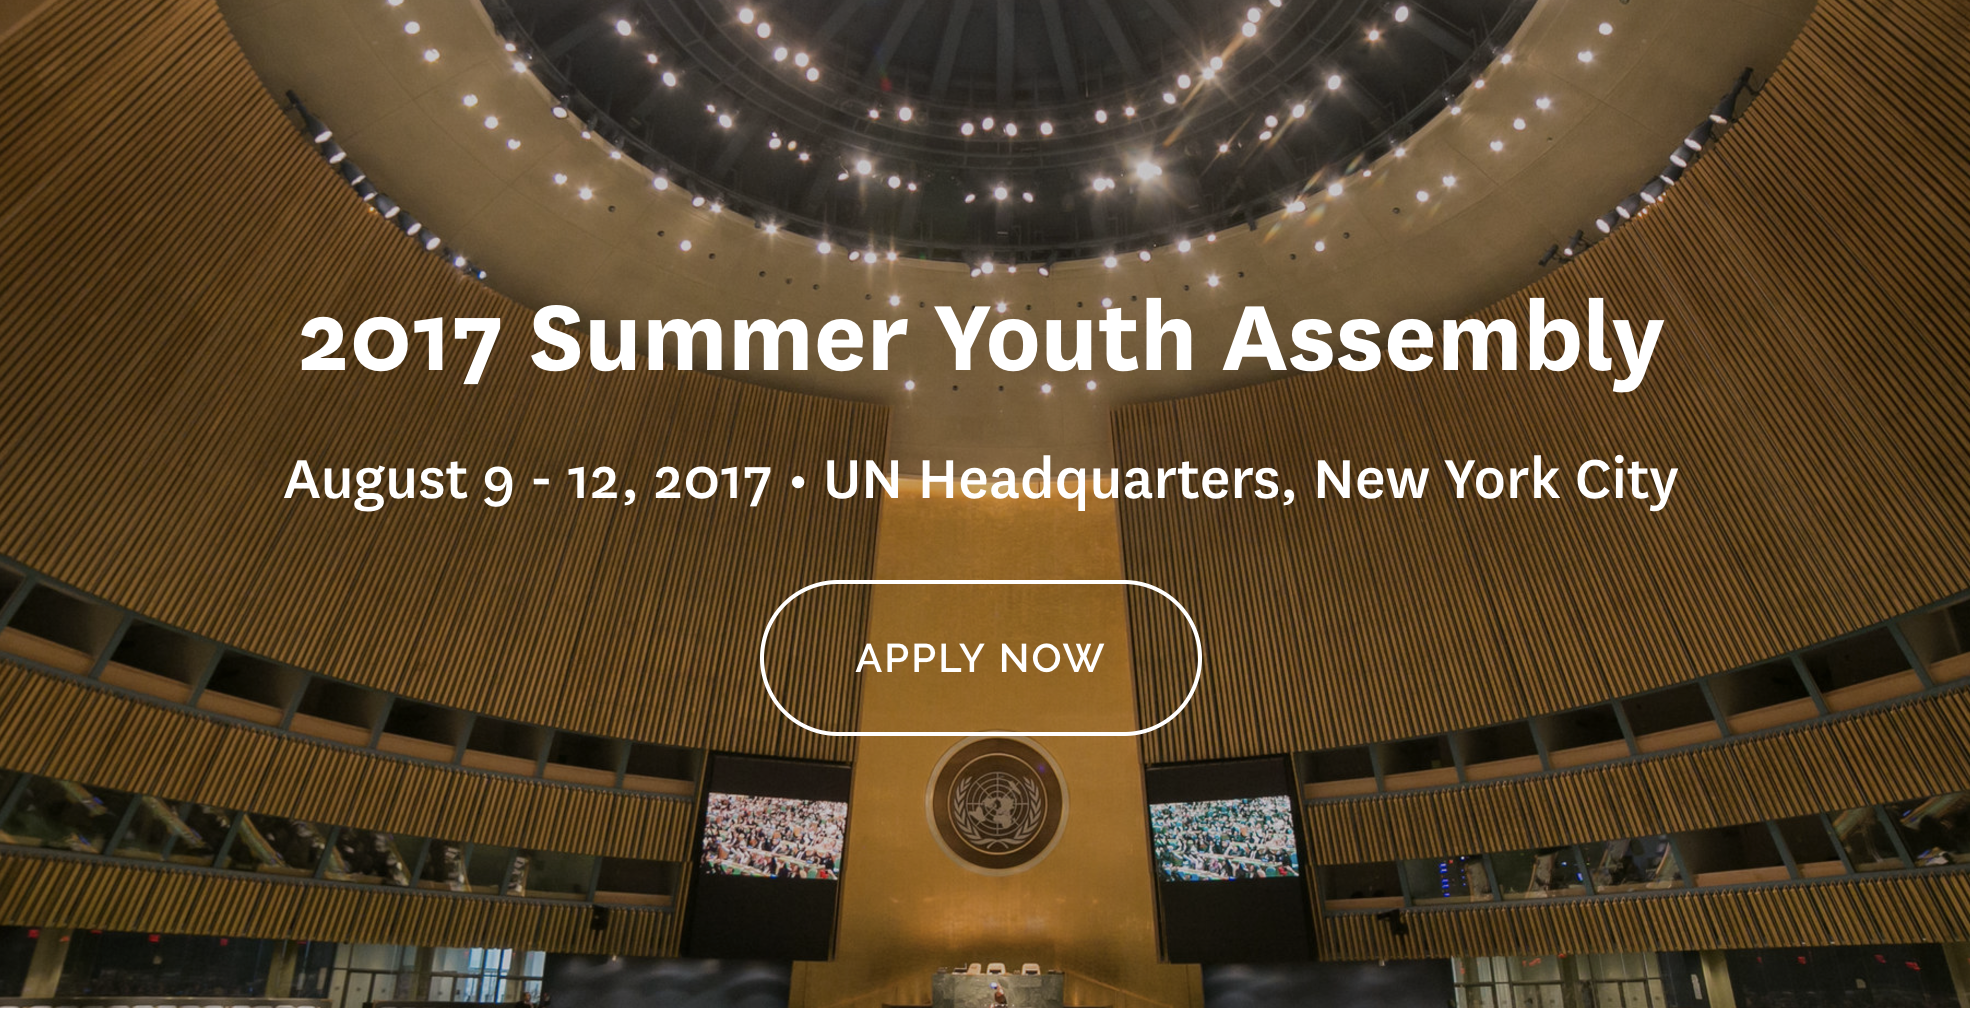 Apply Summer Youth Assembly 2017 at UN Headquarters in New York Scholarship Available